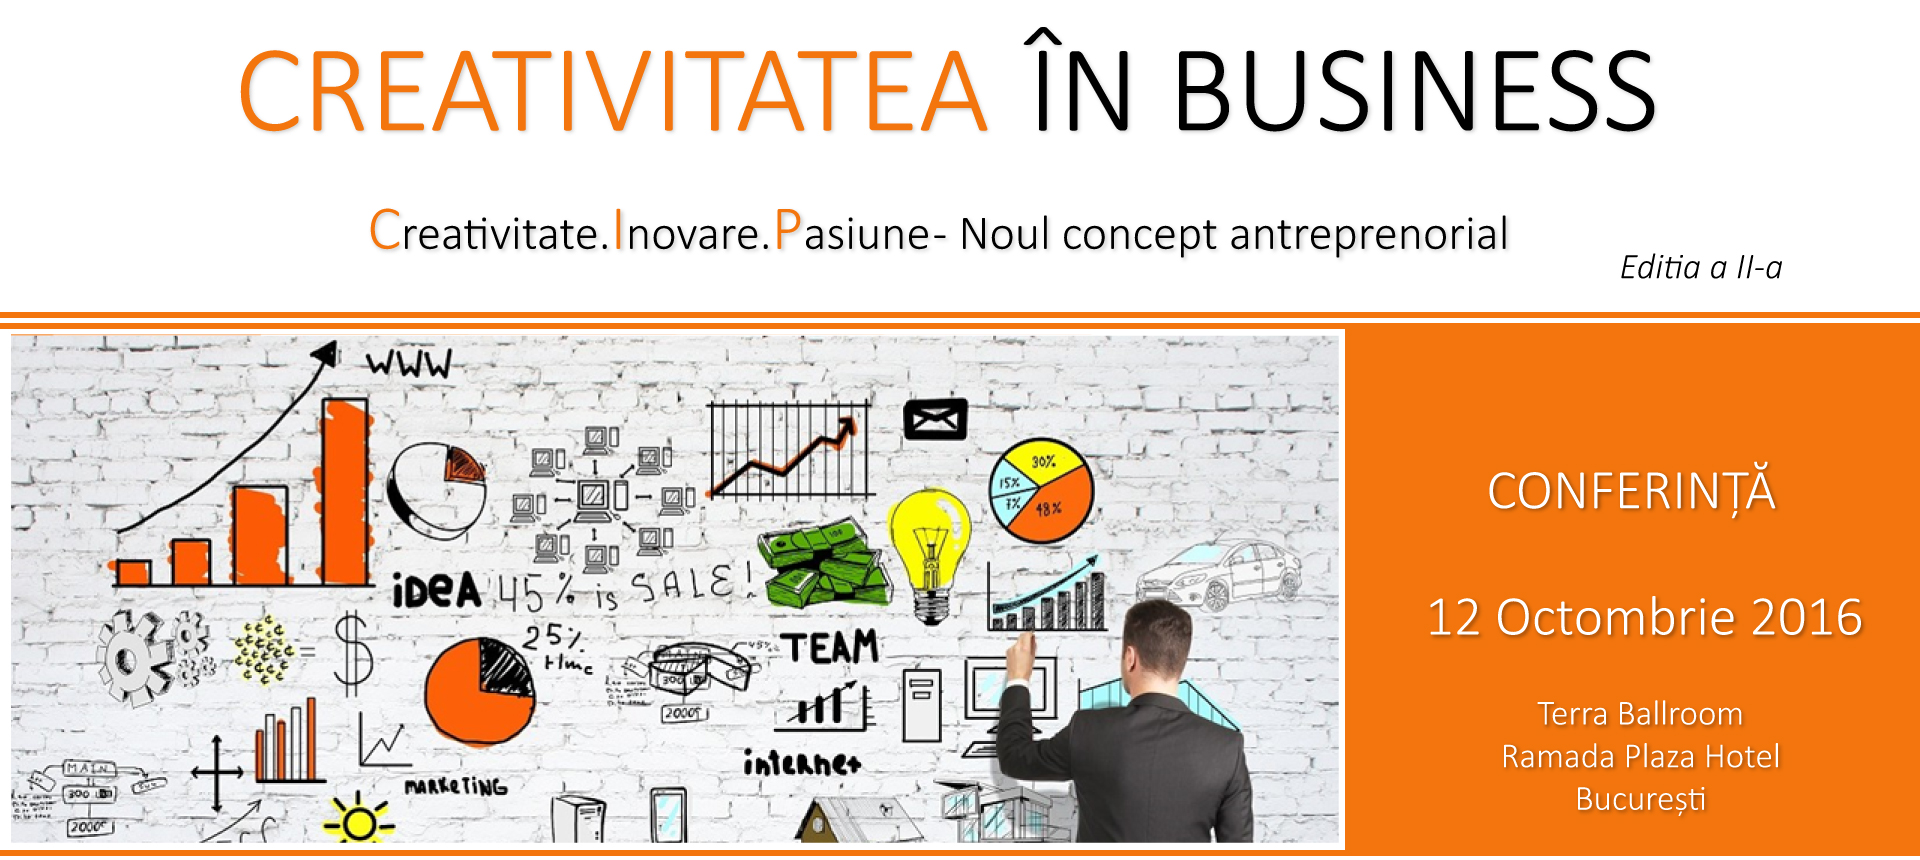 Creativitatea in business_banner